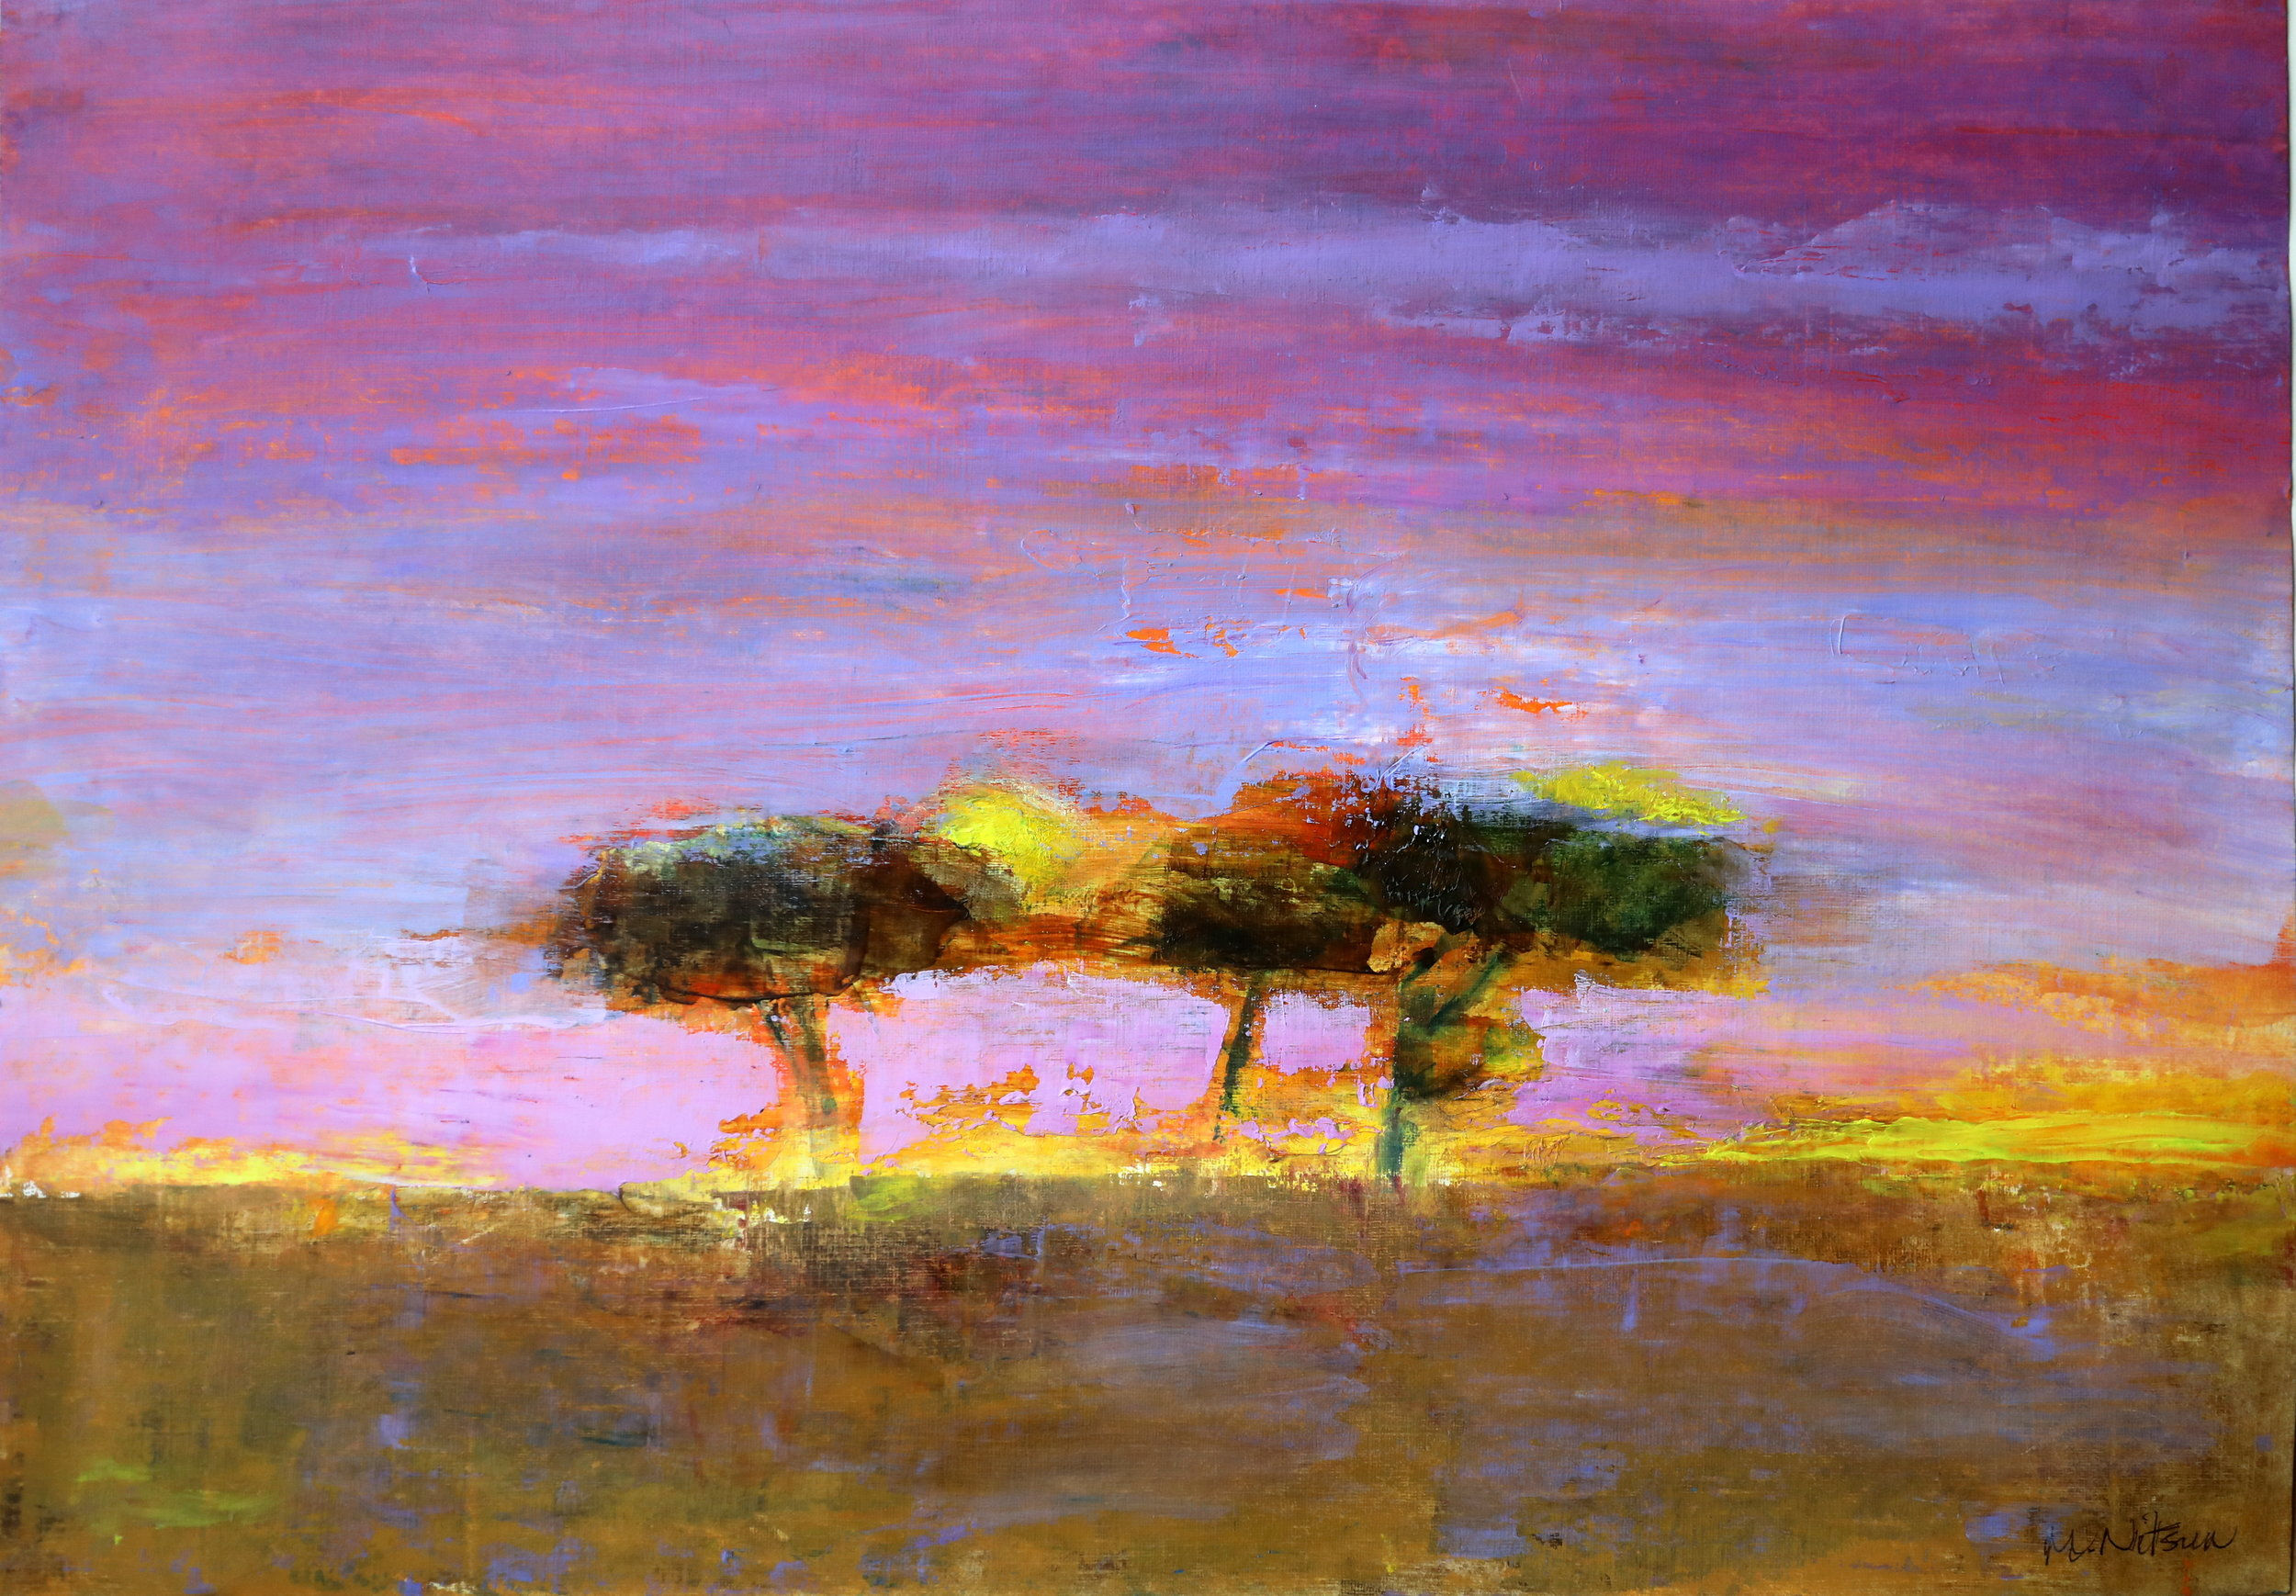 Sunset, Masai Mara (sold)